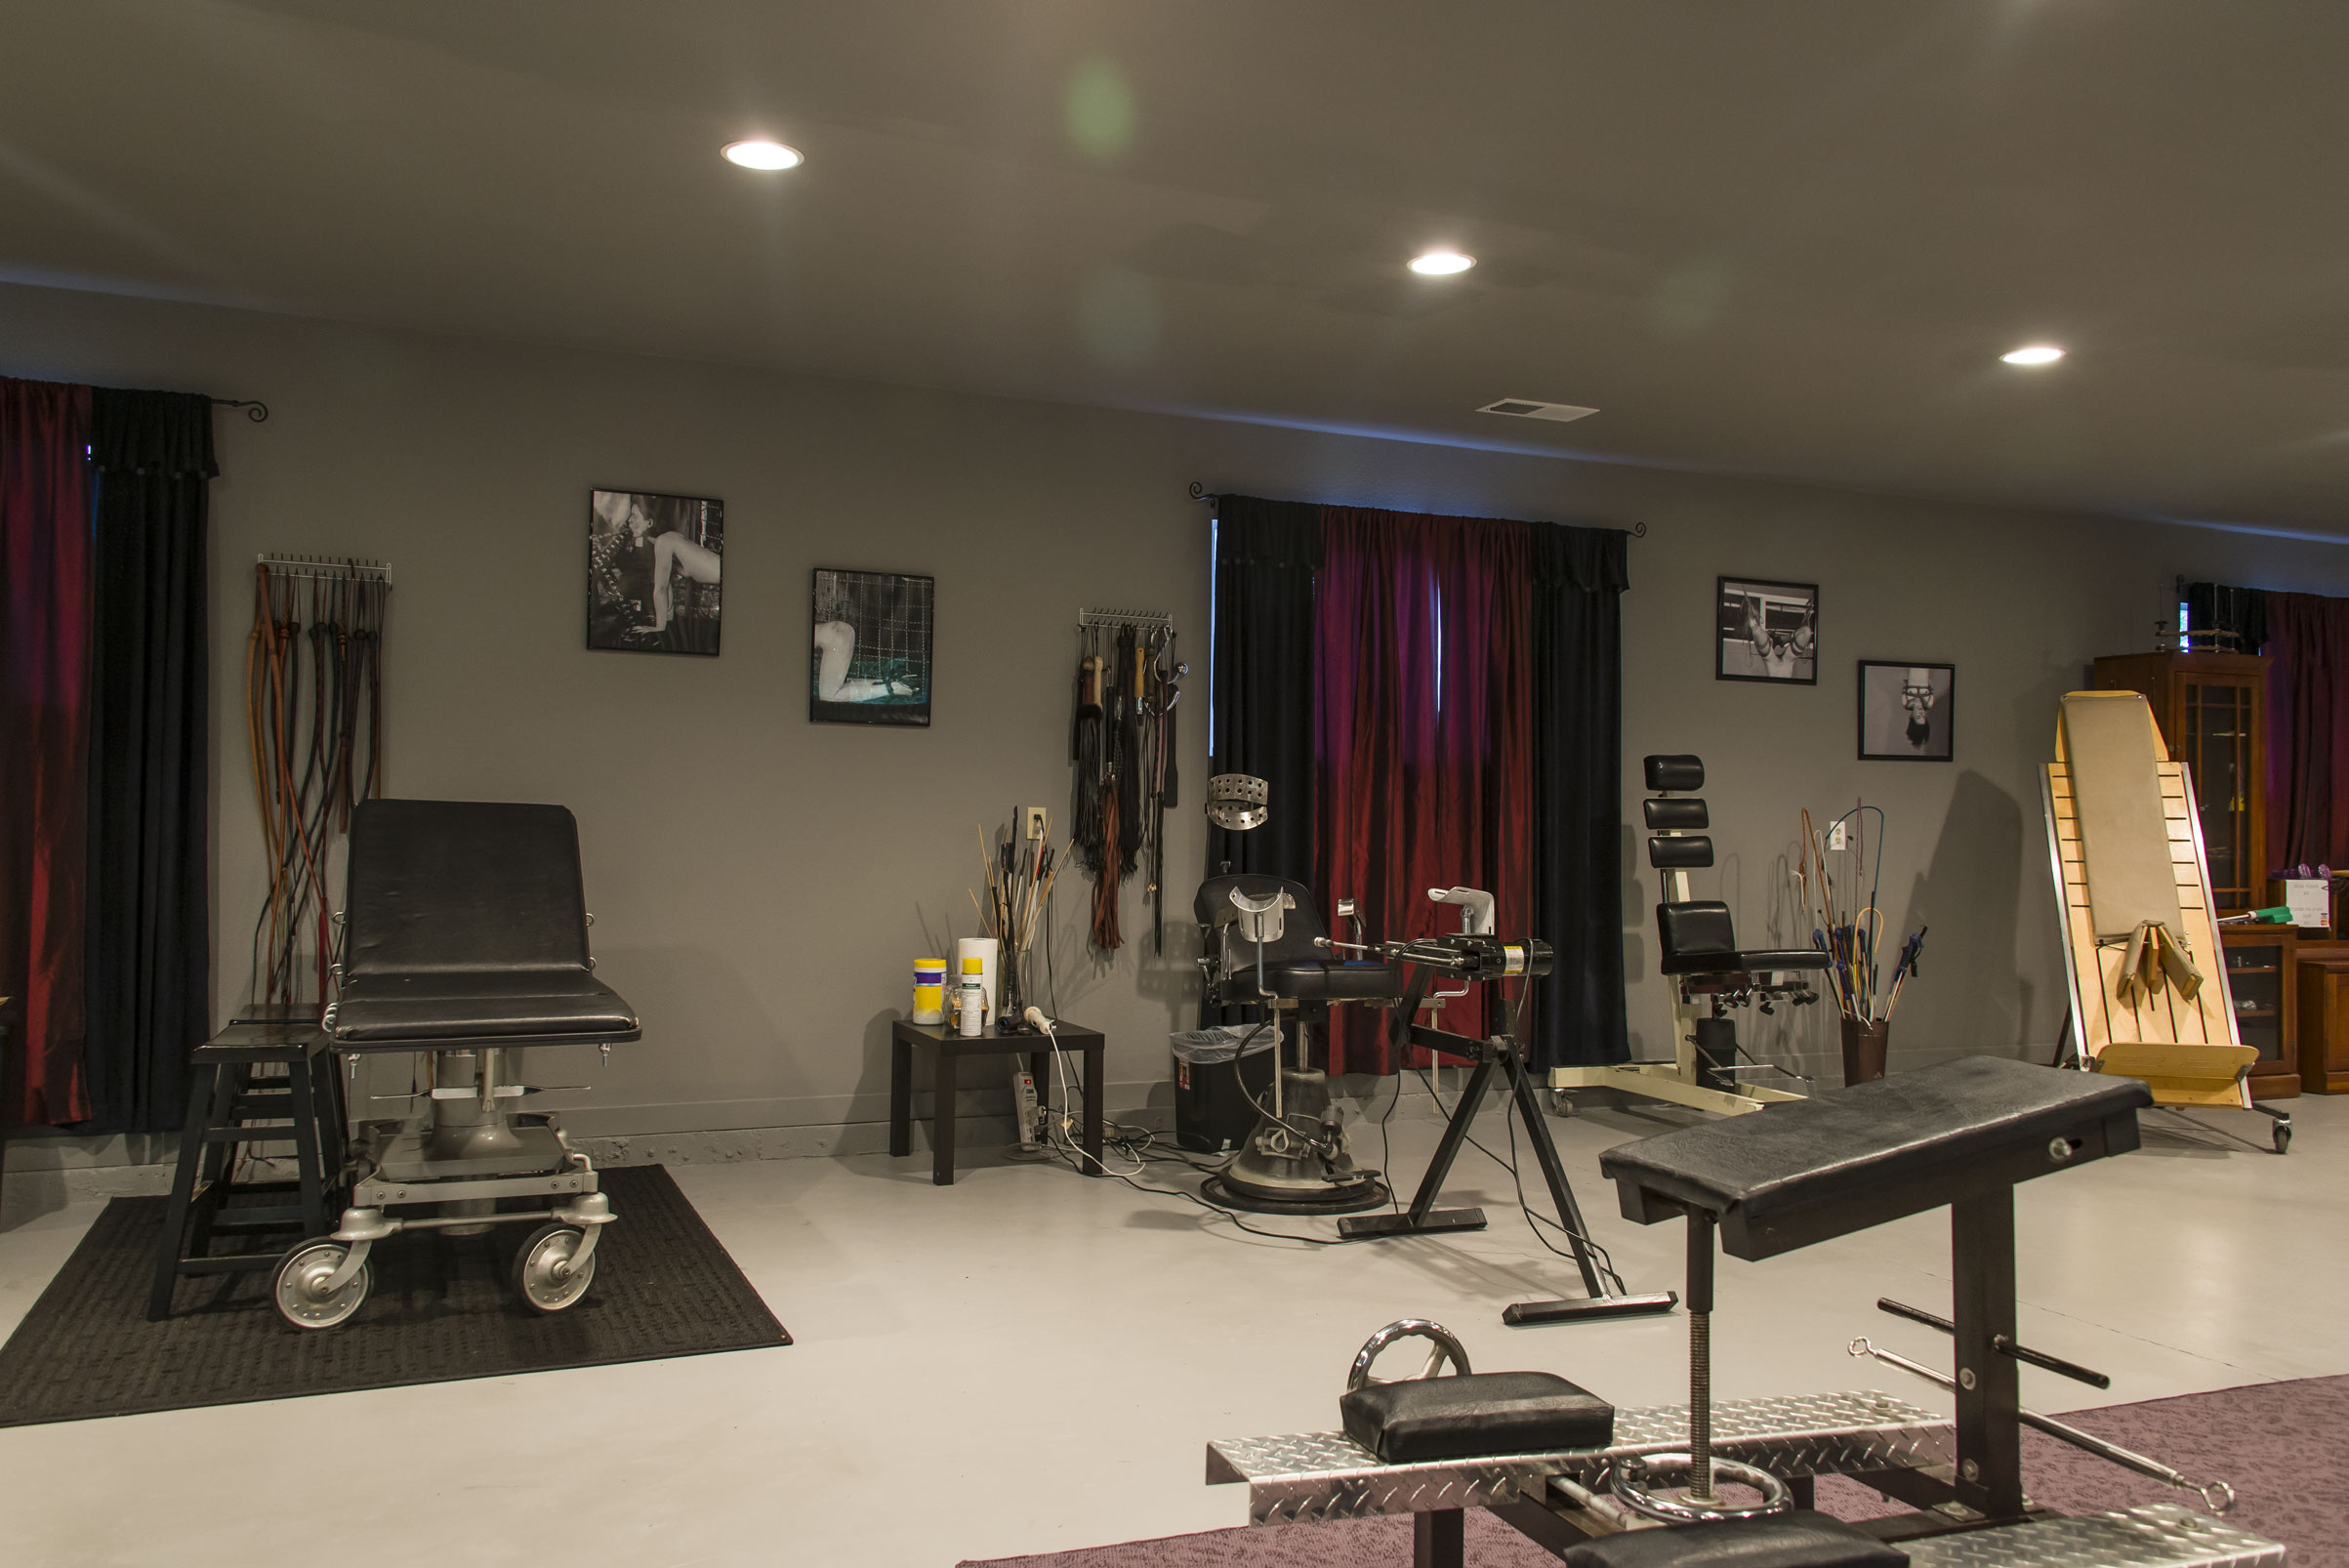 bdsm play rooms